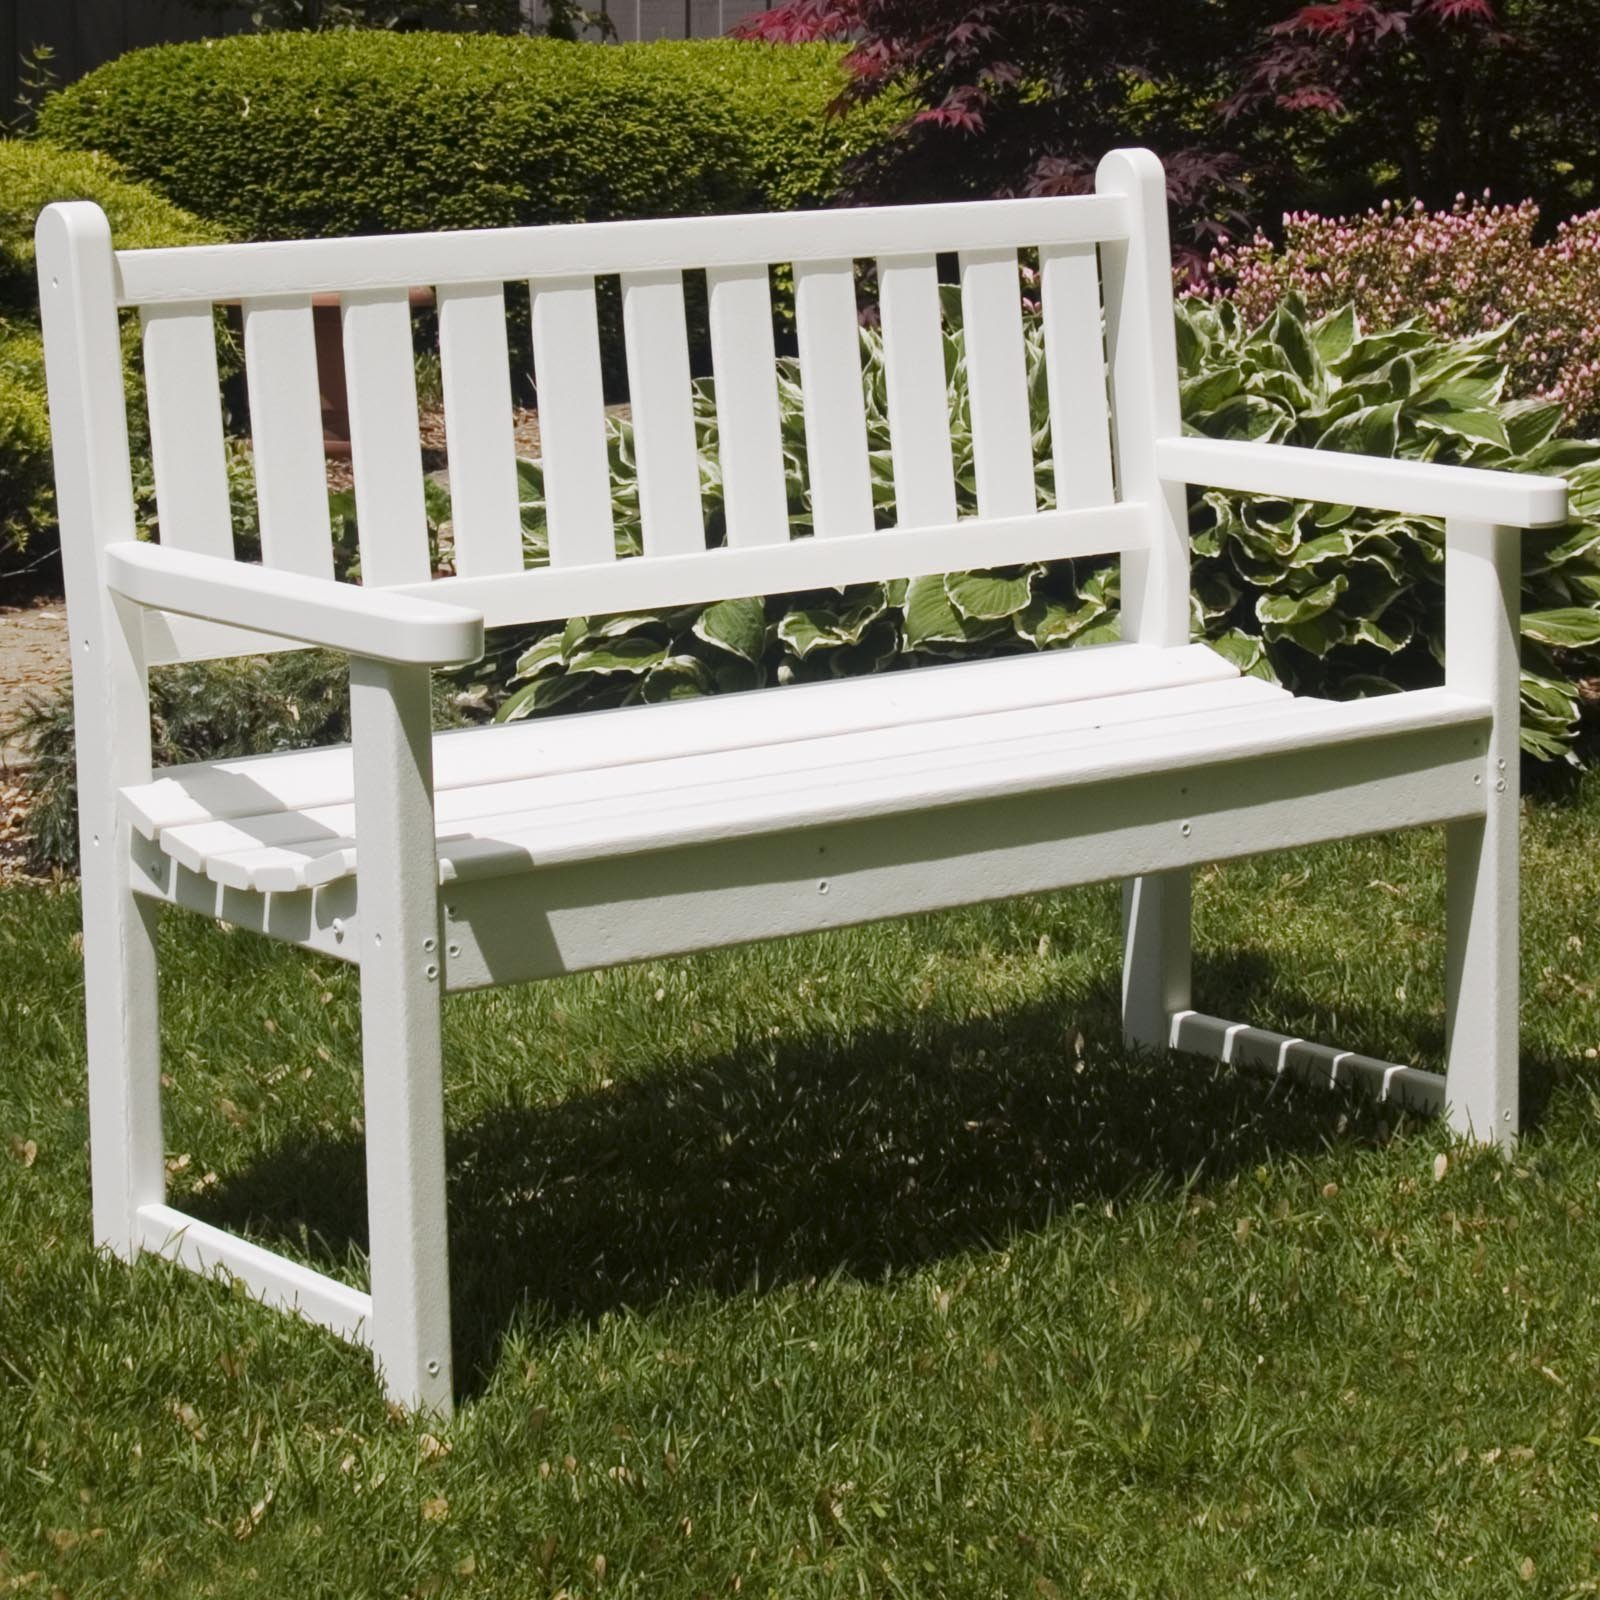 Plastic garden furniture furniture for Plastic garden furniture